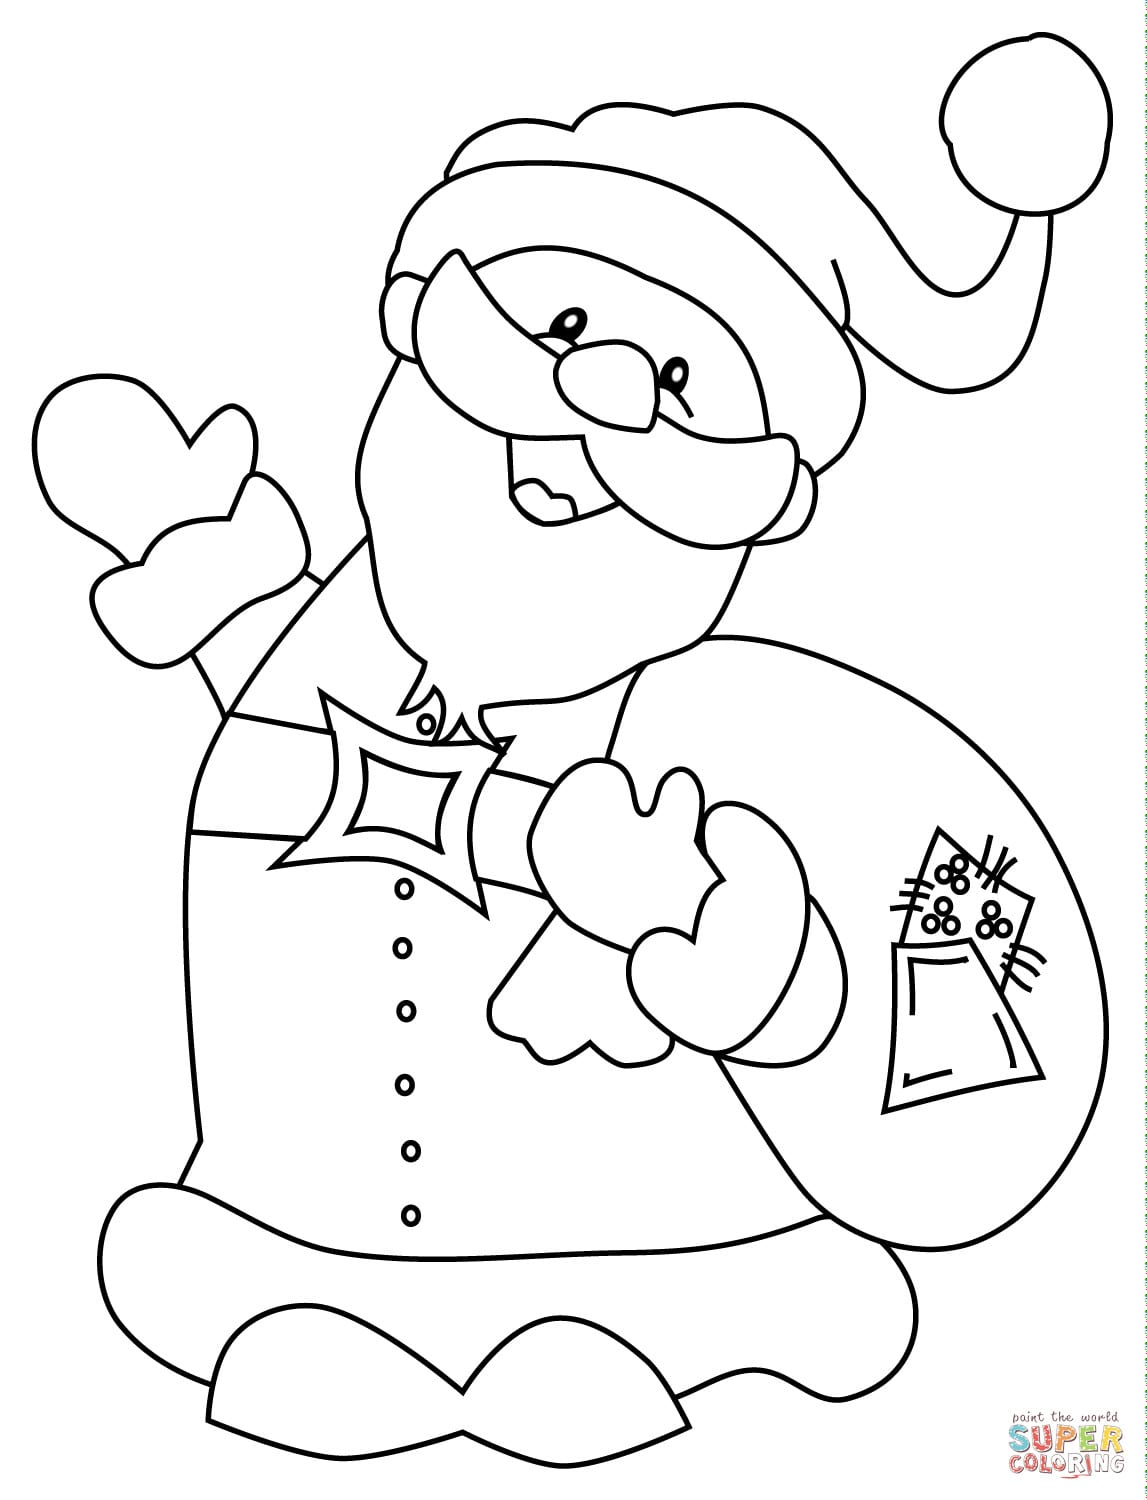 Santa Coloring Pages Best For Kids Pagetmas Pdf Printable Free To